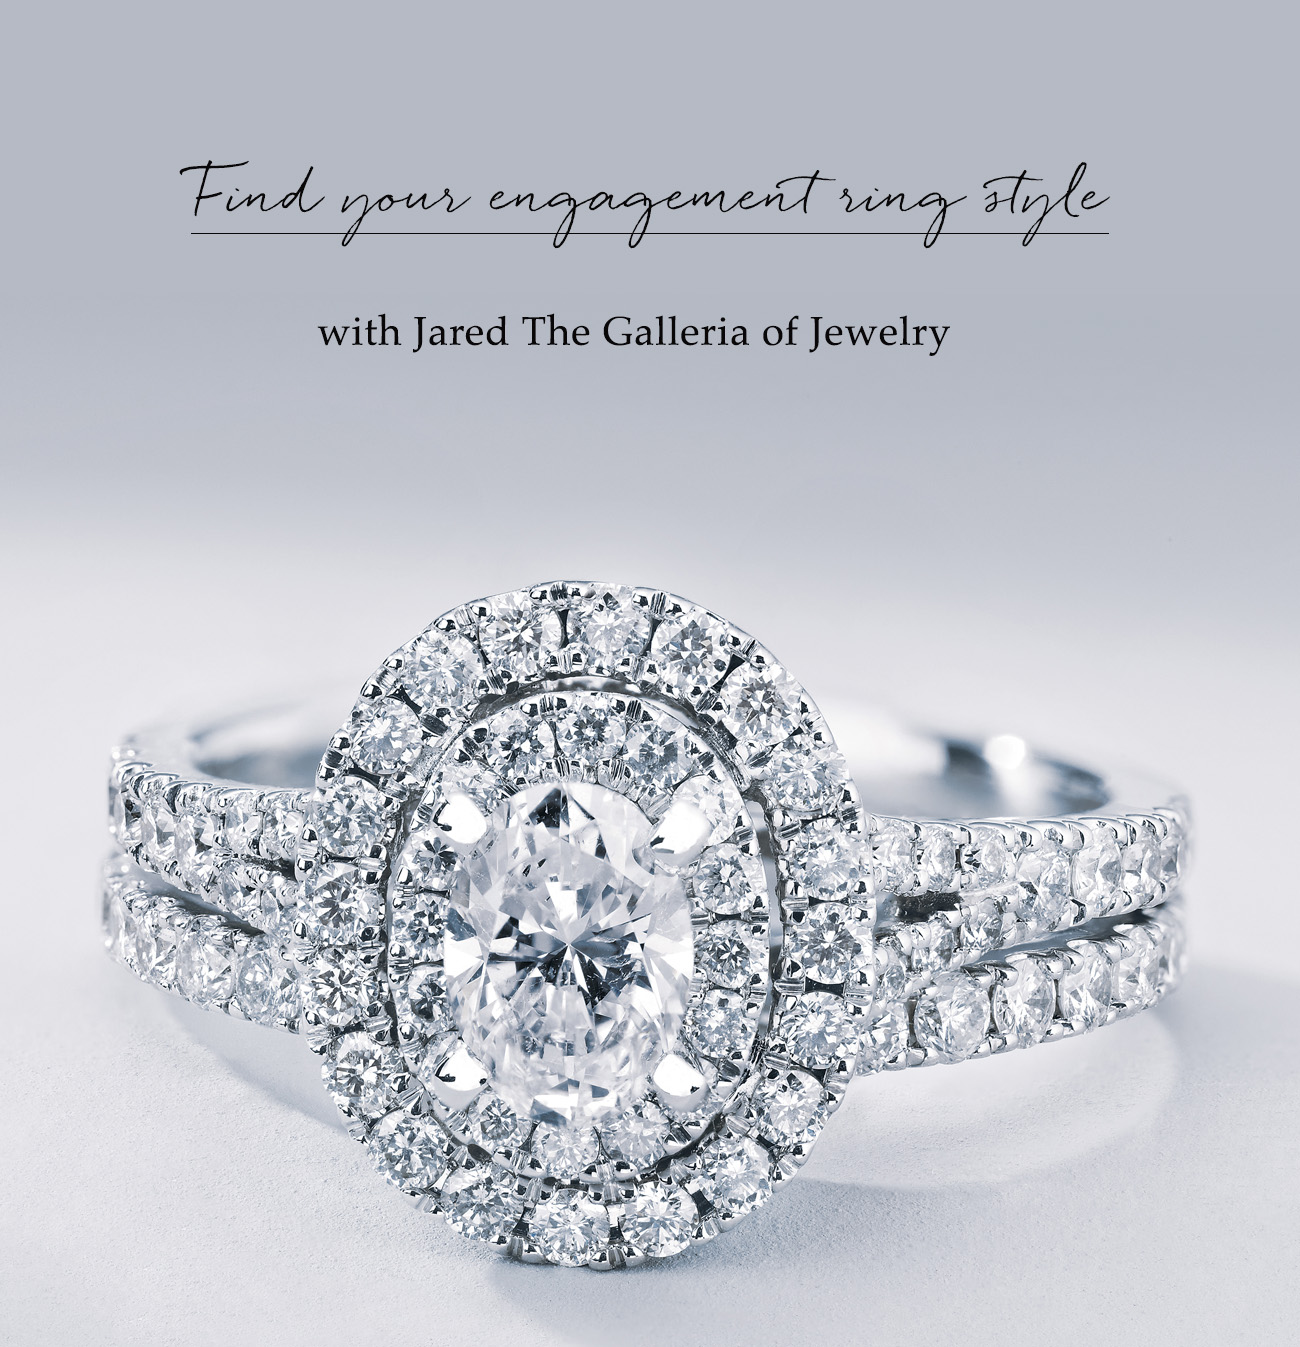 find your engagement ring style with jared jared wedding rings Find Your Engagement Ring Style with Jared